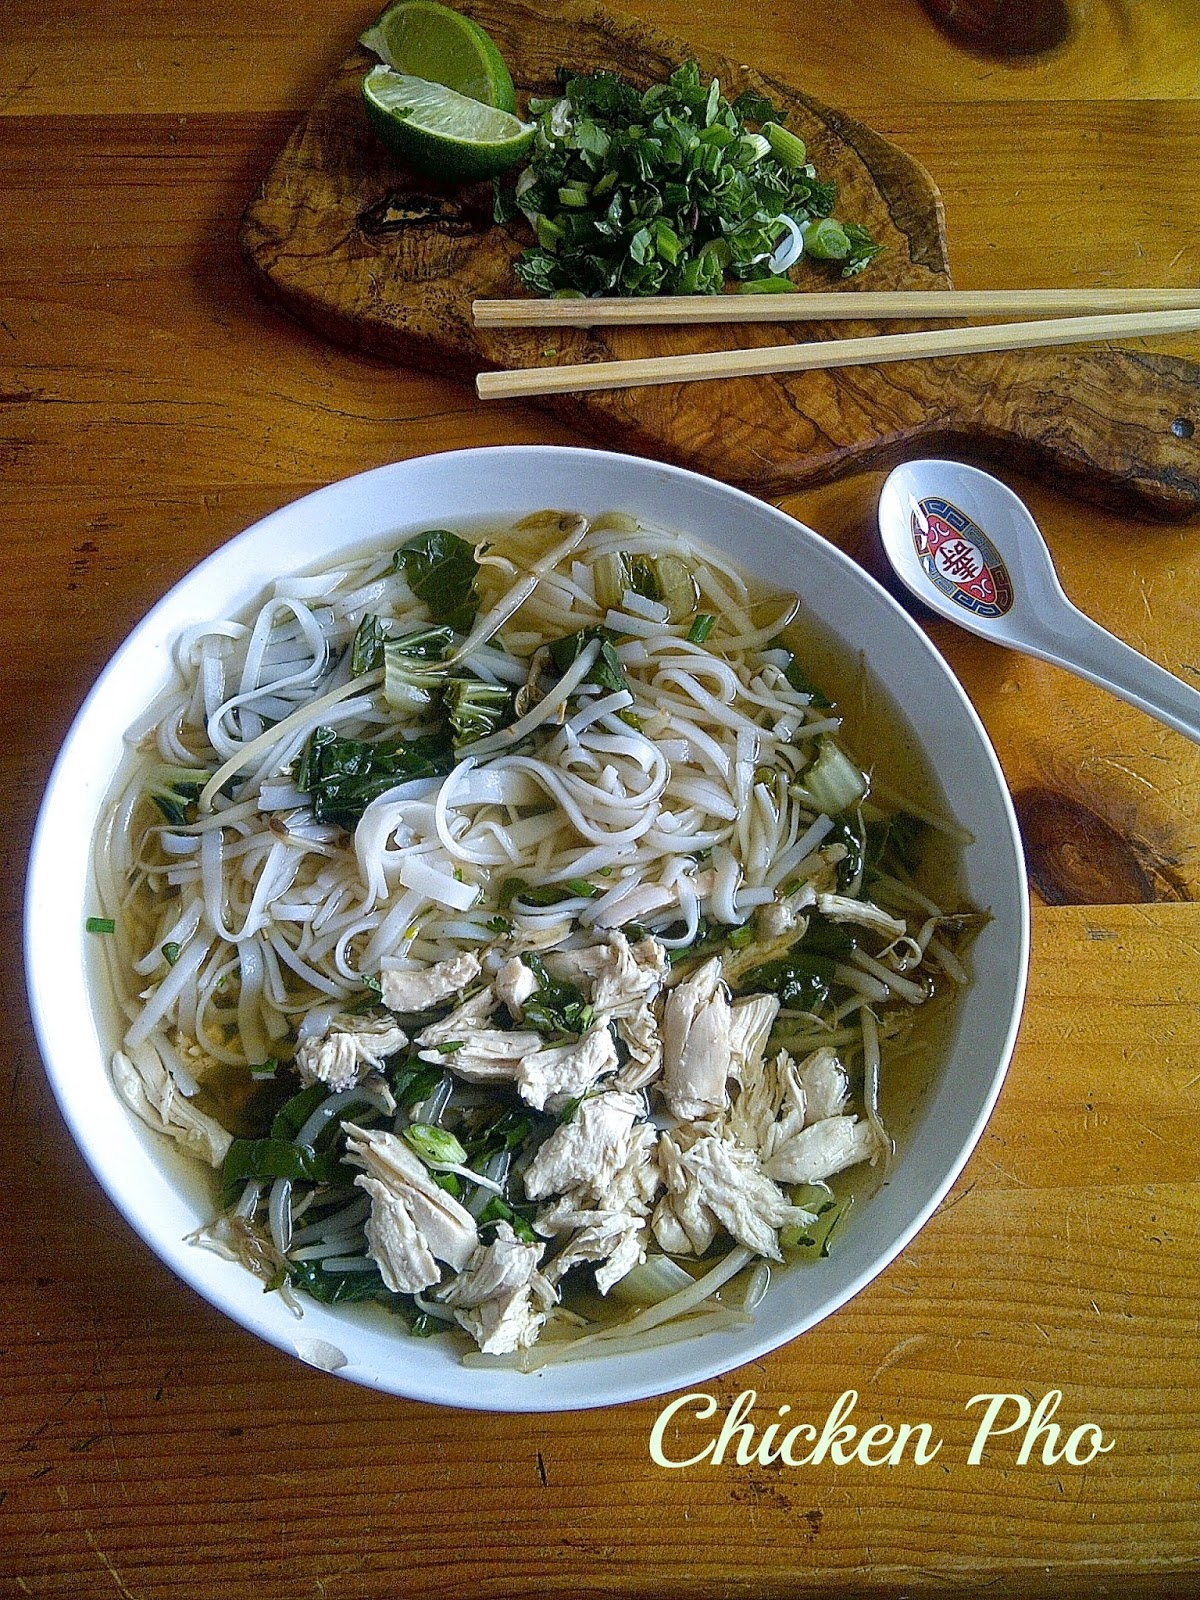 Chicken Pho - www.soliloquyoffood.com